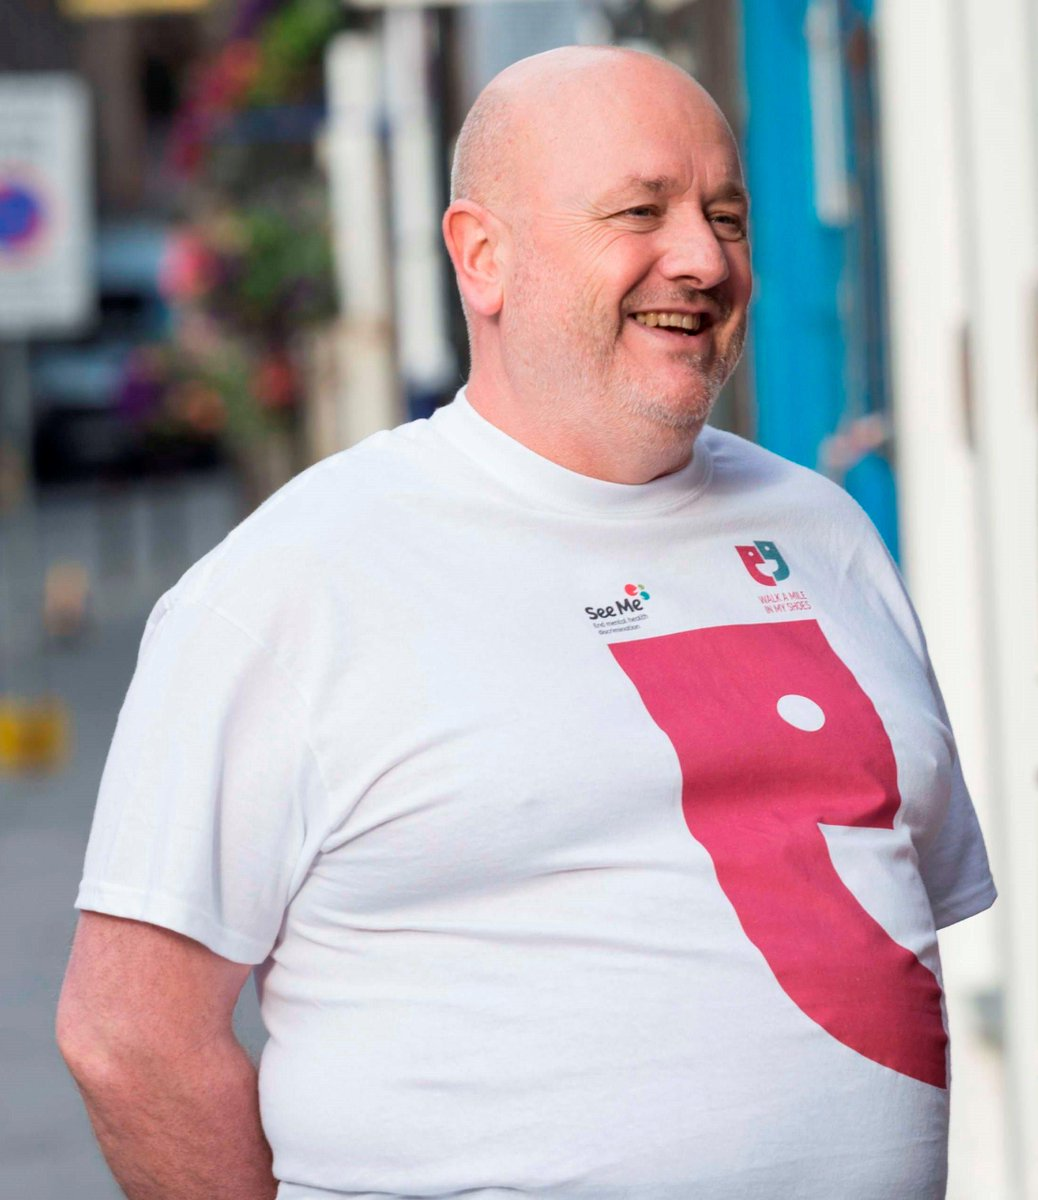 Look out for this man on the Royal Mile tonight...& another 500 people behind him. Join us 6.30 #letswalkamile http://t.co/Efo6ViqEgU